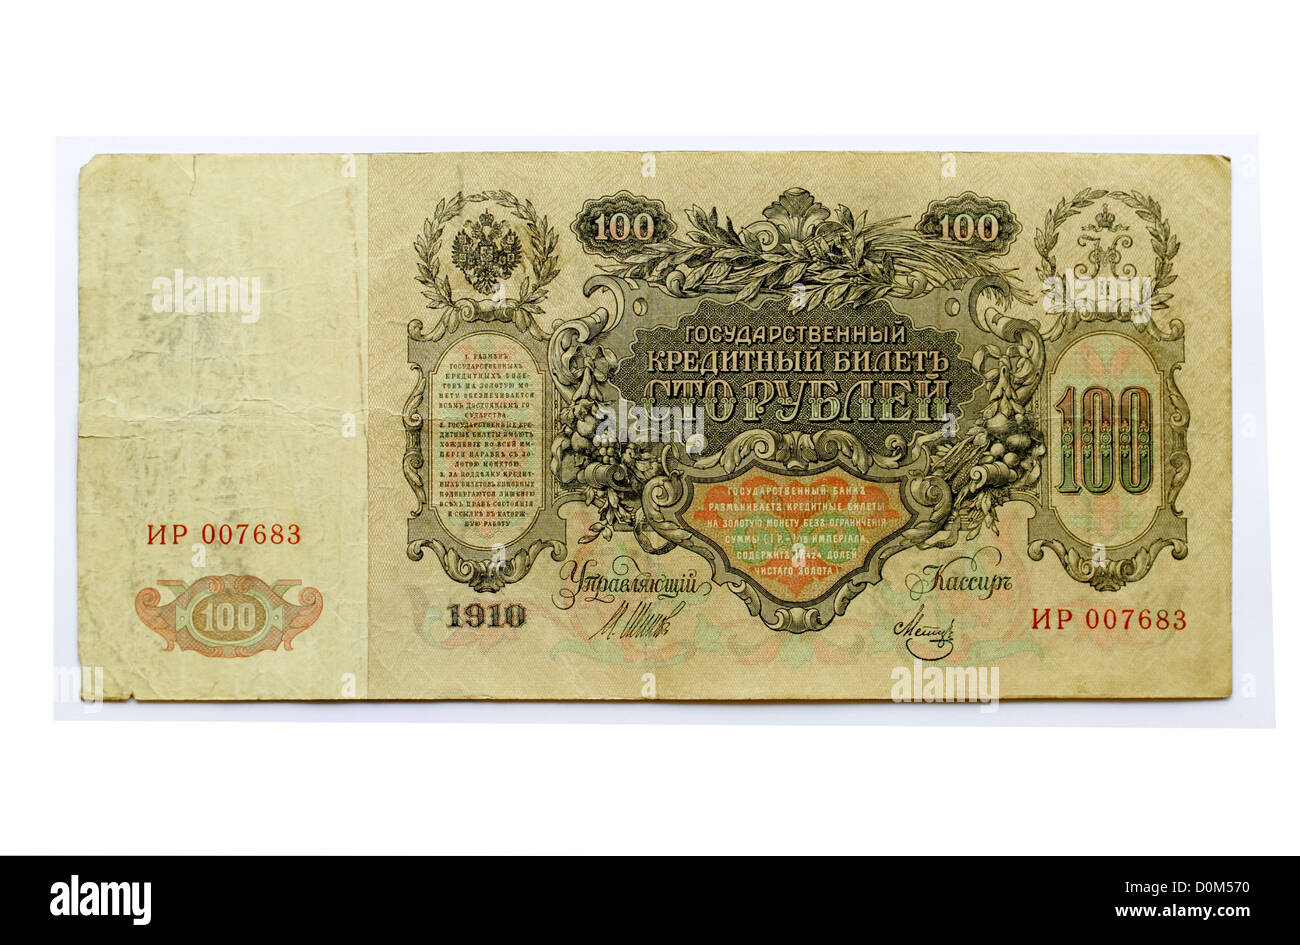 Imperialist Russian 100 rouble ruble banknote 1910 issue - Stock Image